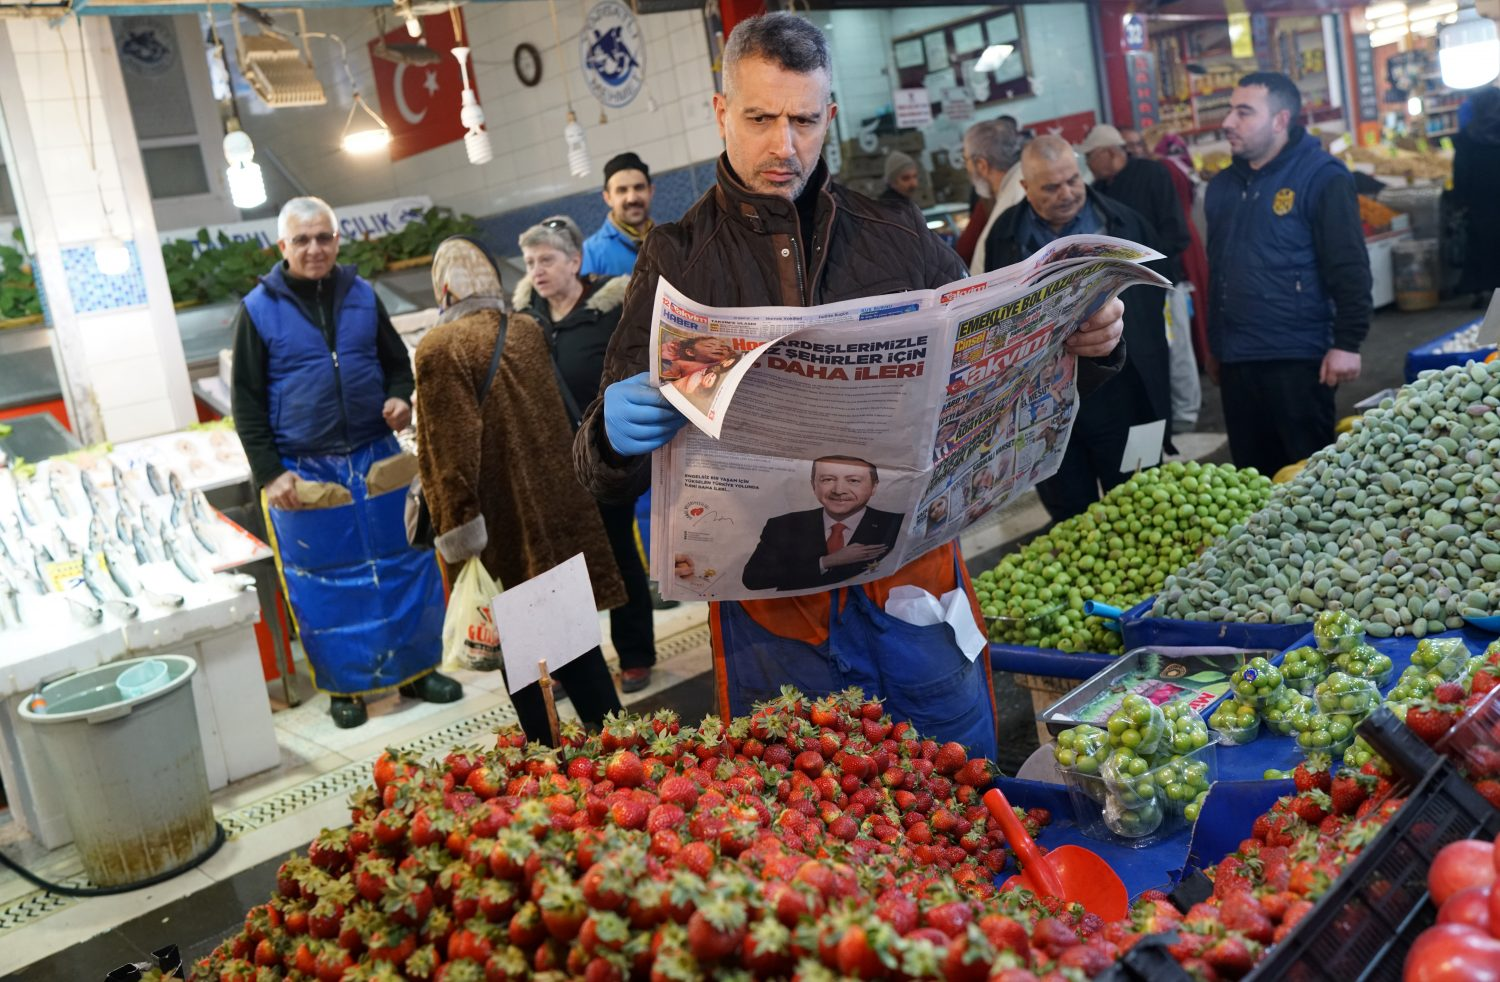 A stallholder reads a newspaper as he waits for customers at a bazaar in Ankara, Turkey, March 26, 2019. Picture taken March 26, 2019. REUTERS/Umit Bektas